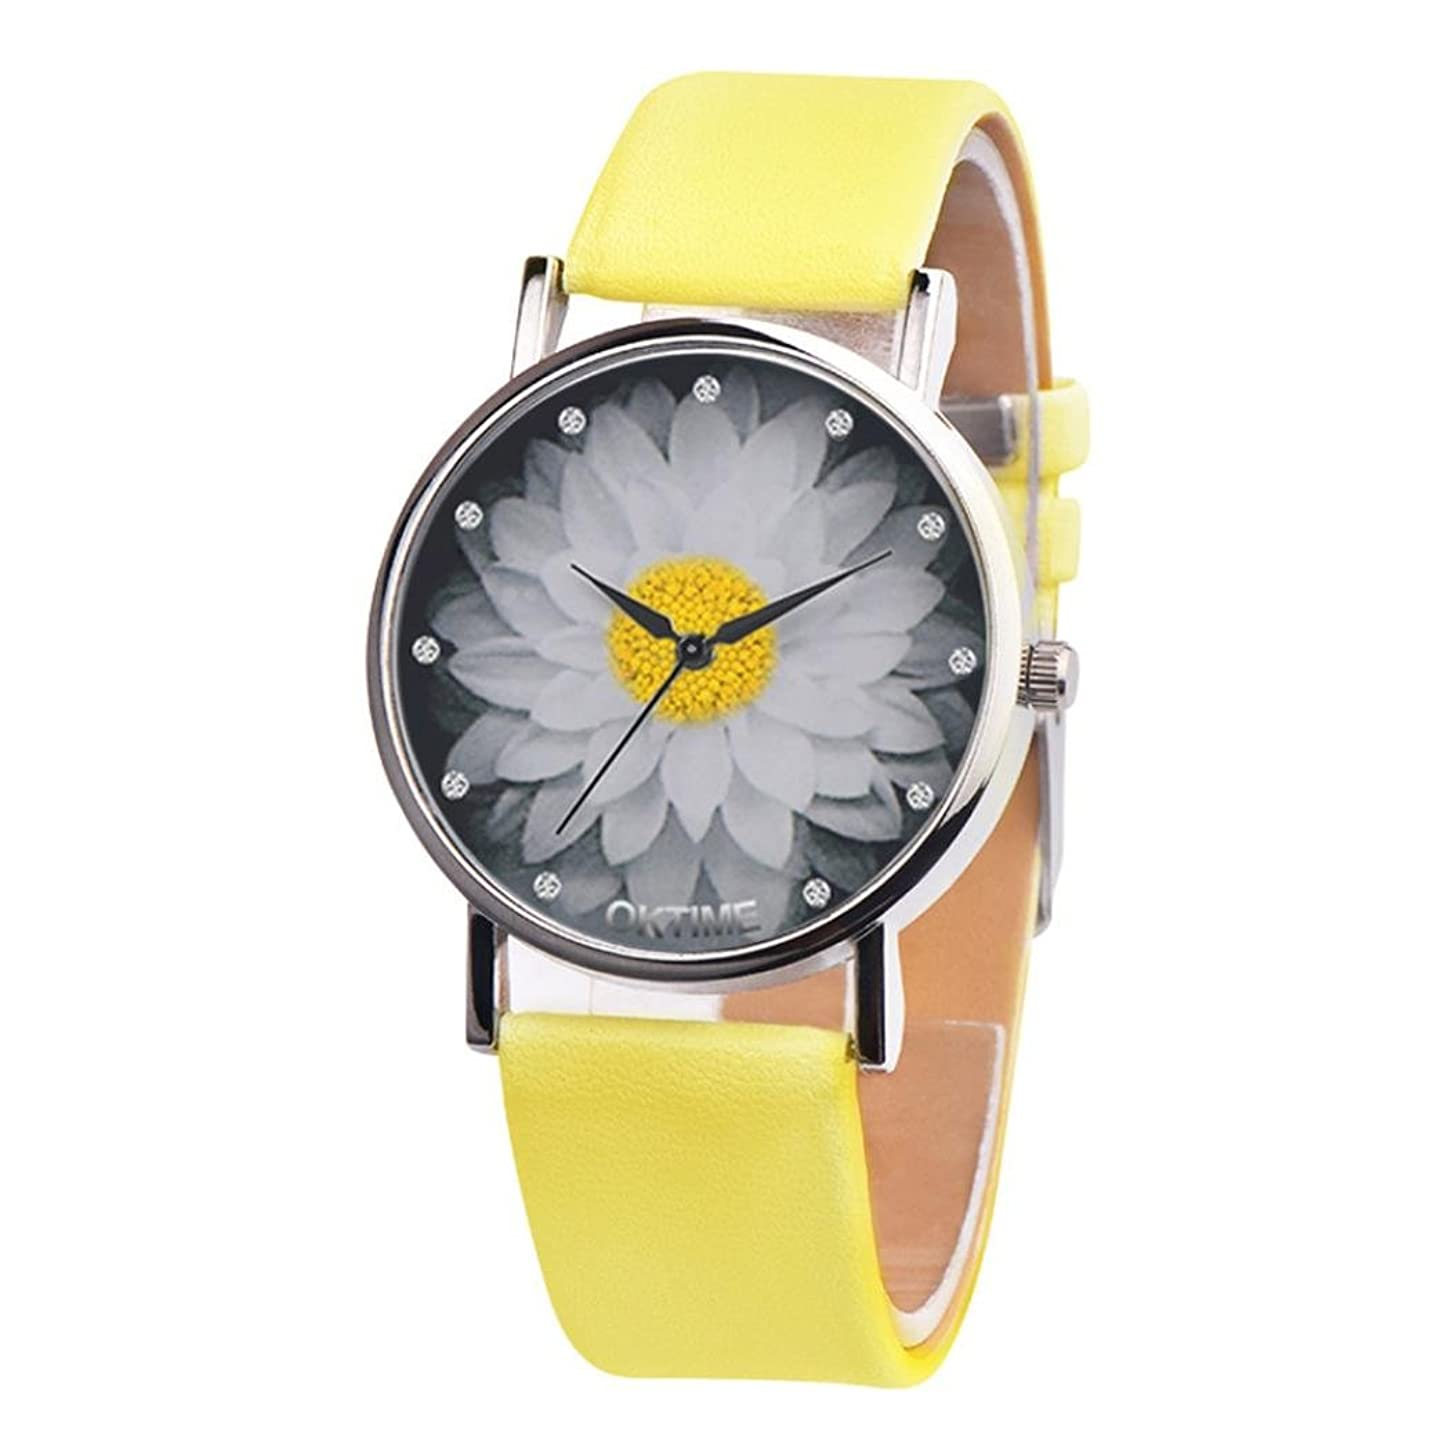 Swyss Women Elegant Lotus Watch Leather Analog Quartz Round WristWatches Chic Charm Accessories New HOT Fashion (Yellow)